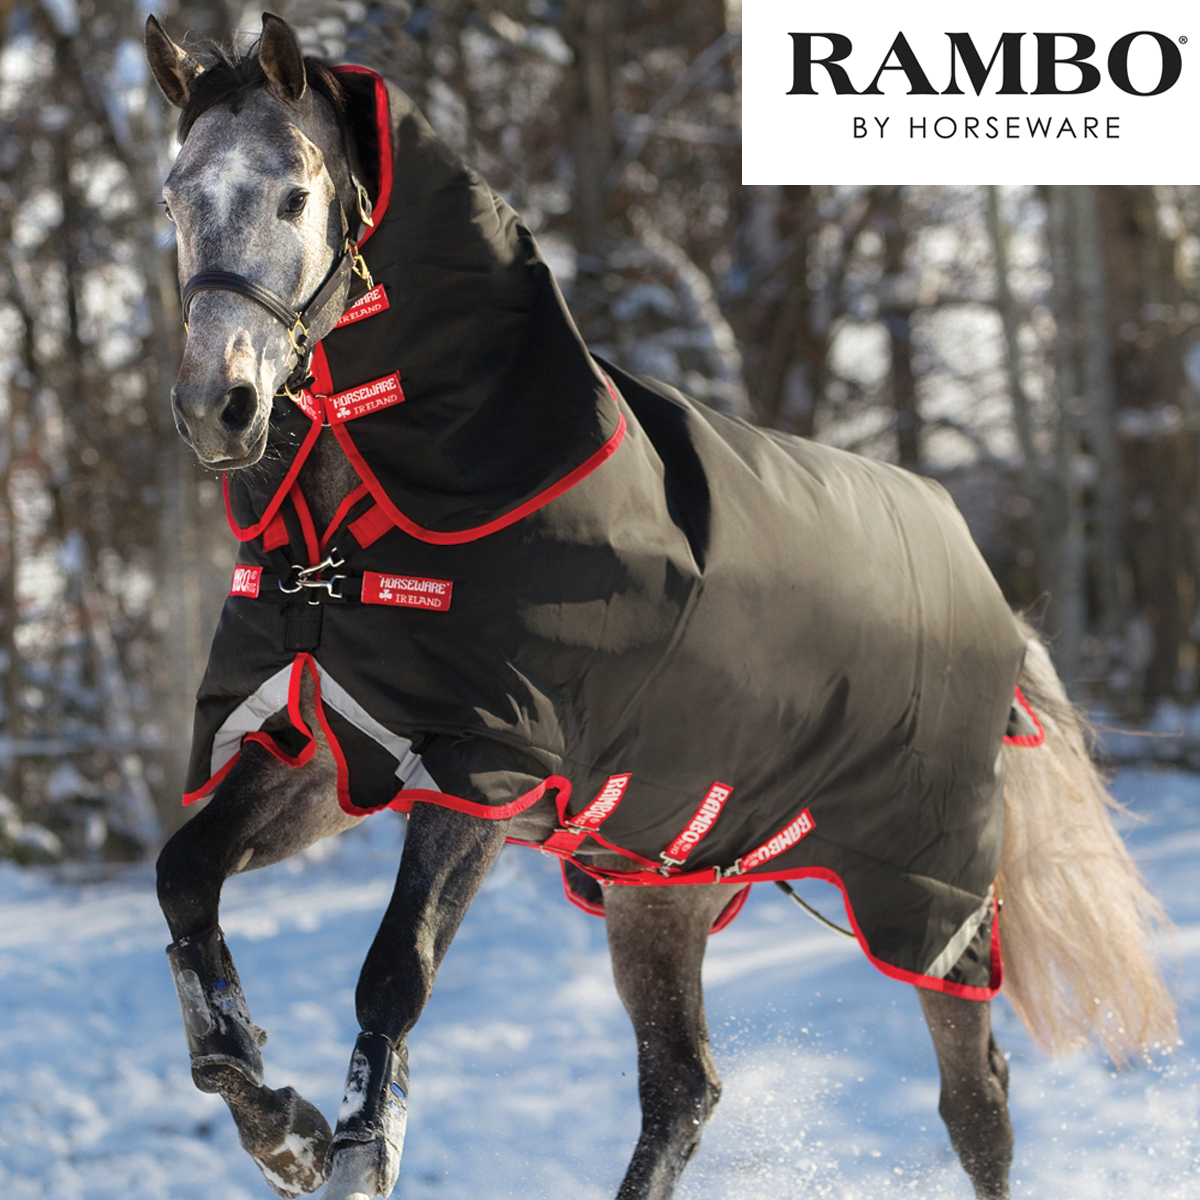 Horseware Rambo Rambo Horseware Supreme Heavyweight Turnout with Vari-Layer (450g) bed7be